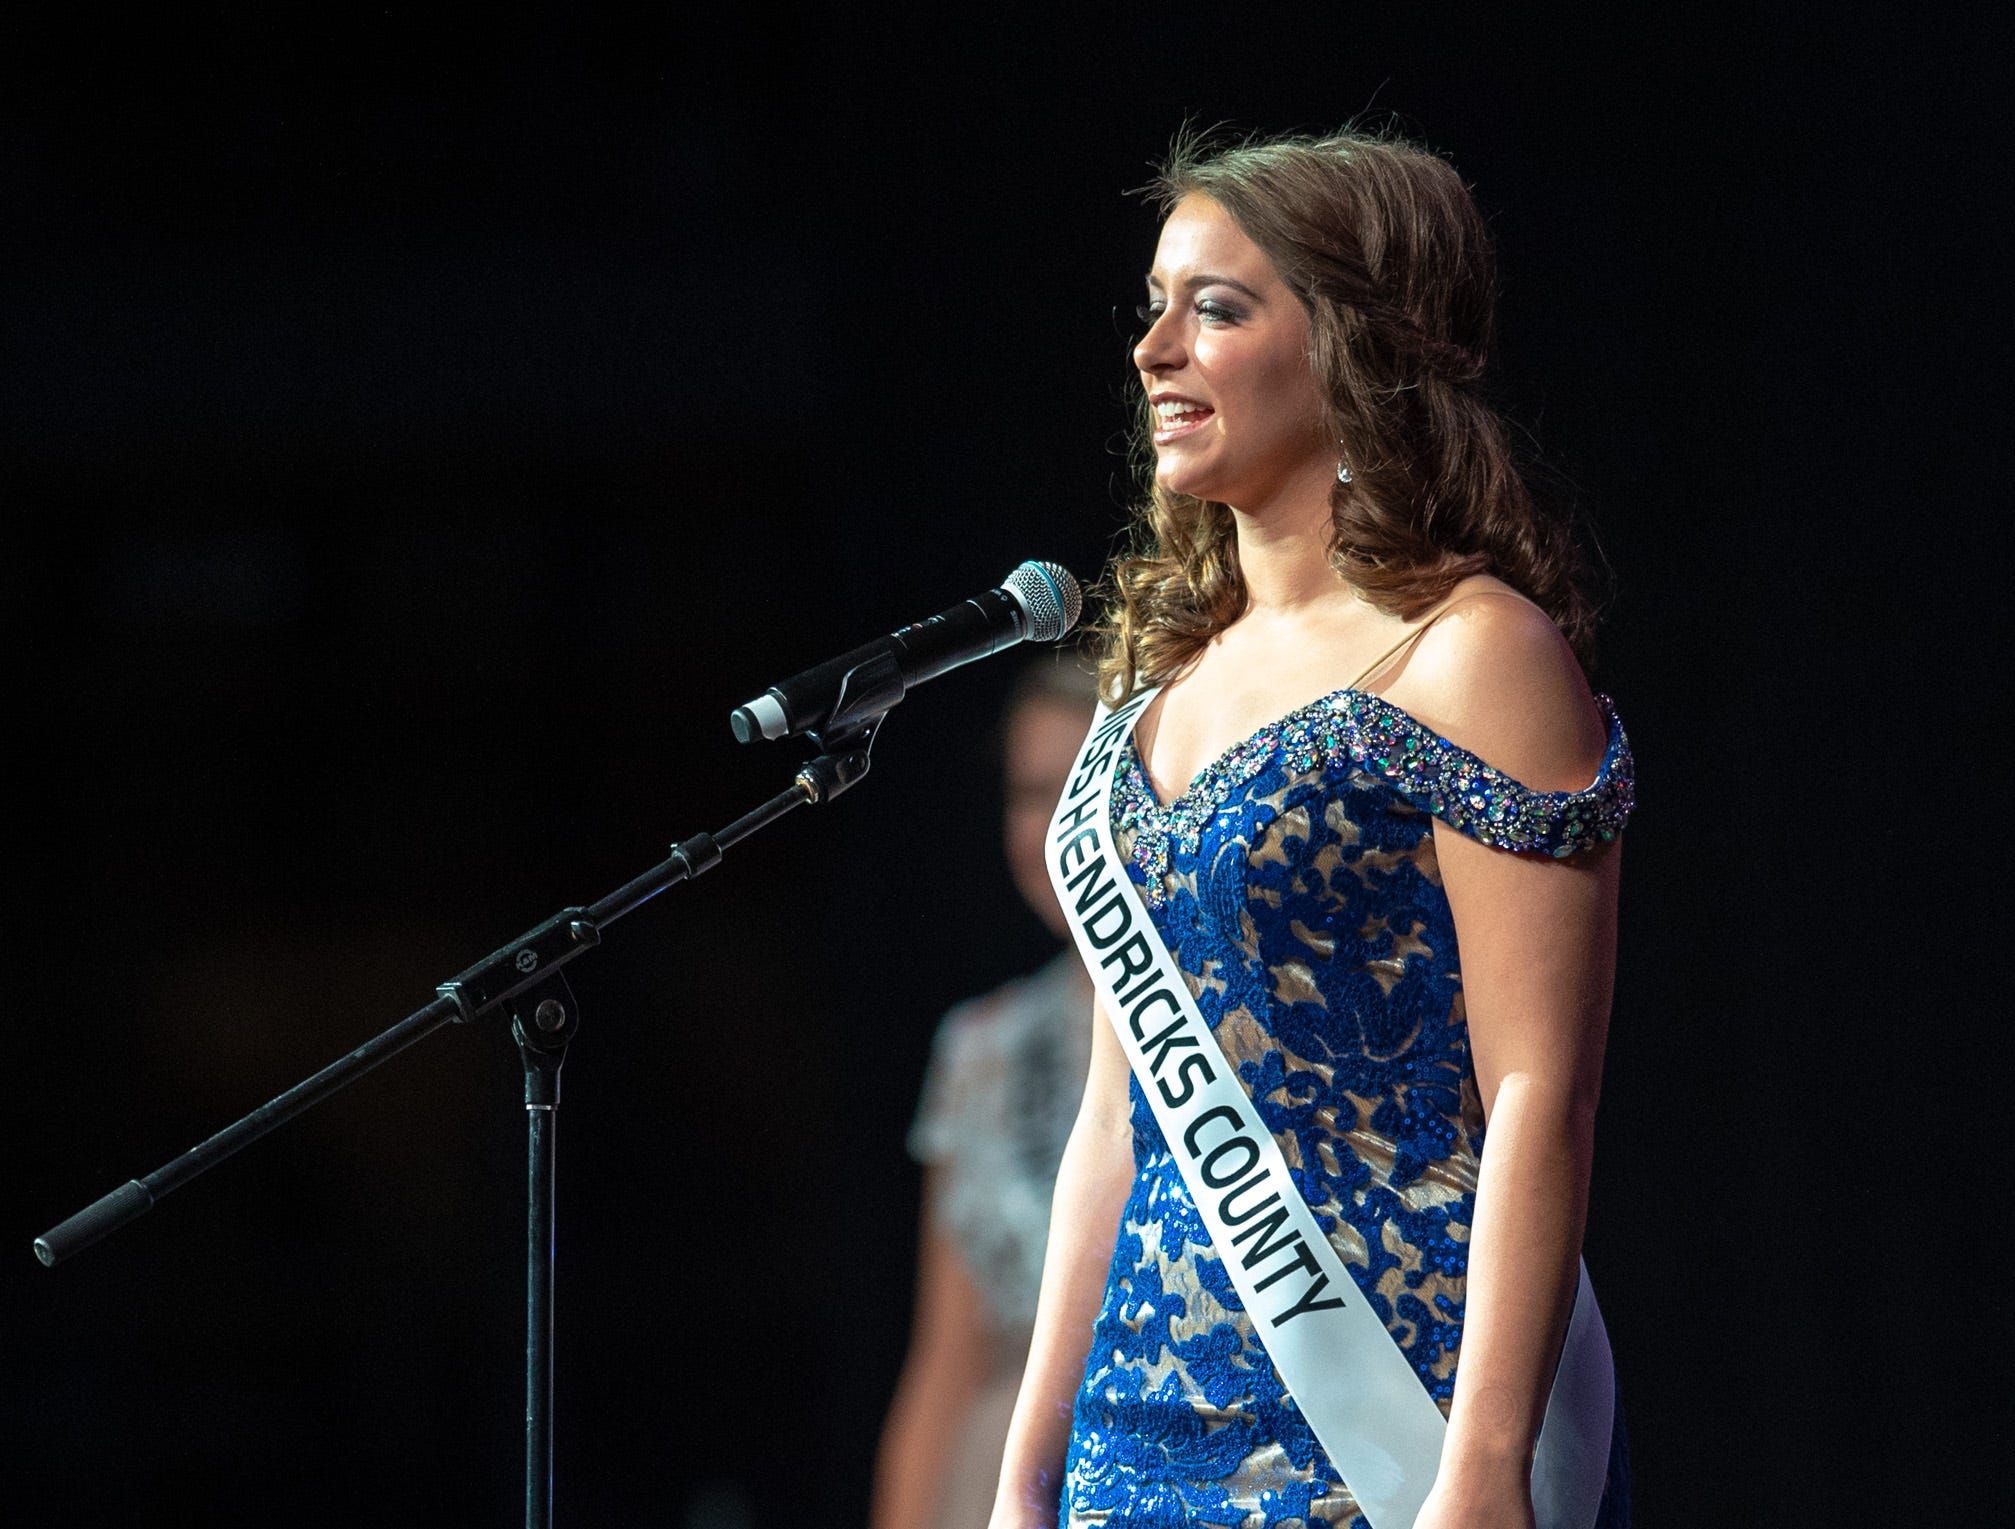 Miss Hendricks County, Melanie Leichty, introduces herself during the 61st Indiana State Fair Queen Pageant at the Indiana State Fairgrounds in Indianapolis on Sunday, Jan. 6, 2019.